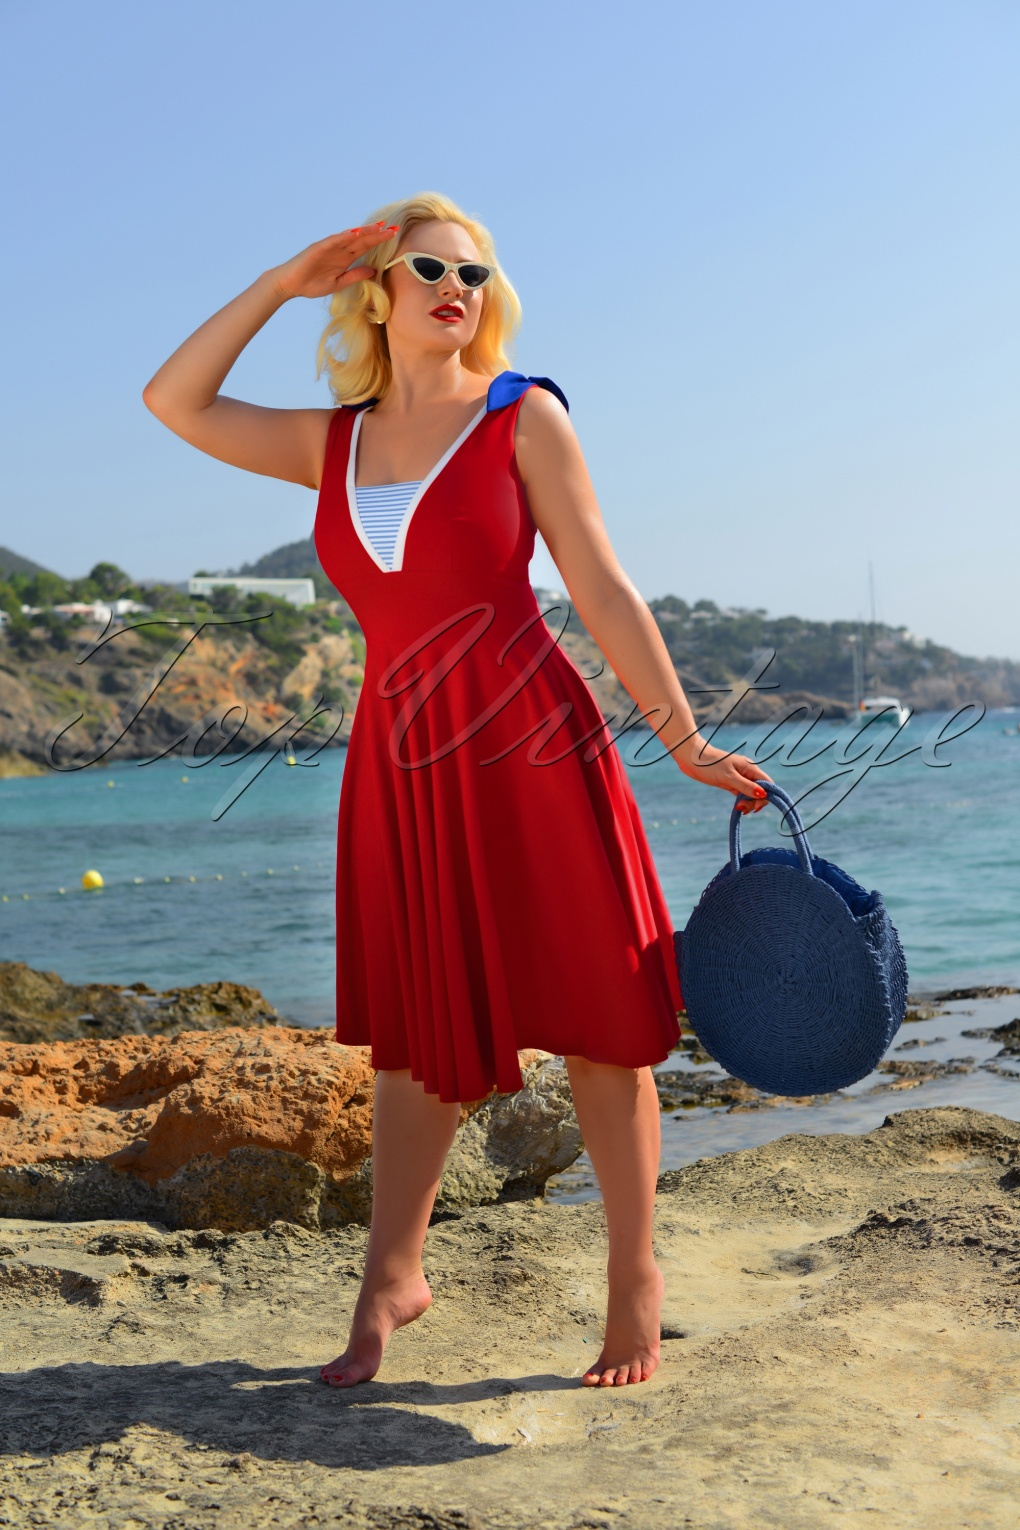 Vintage Sailor Clothes, Nautical Theme Clothing 50s Gerry Sailor Swing Dress in Red £124.92 AT vintagedancer.com